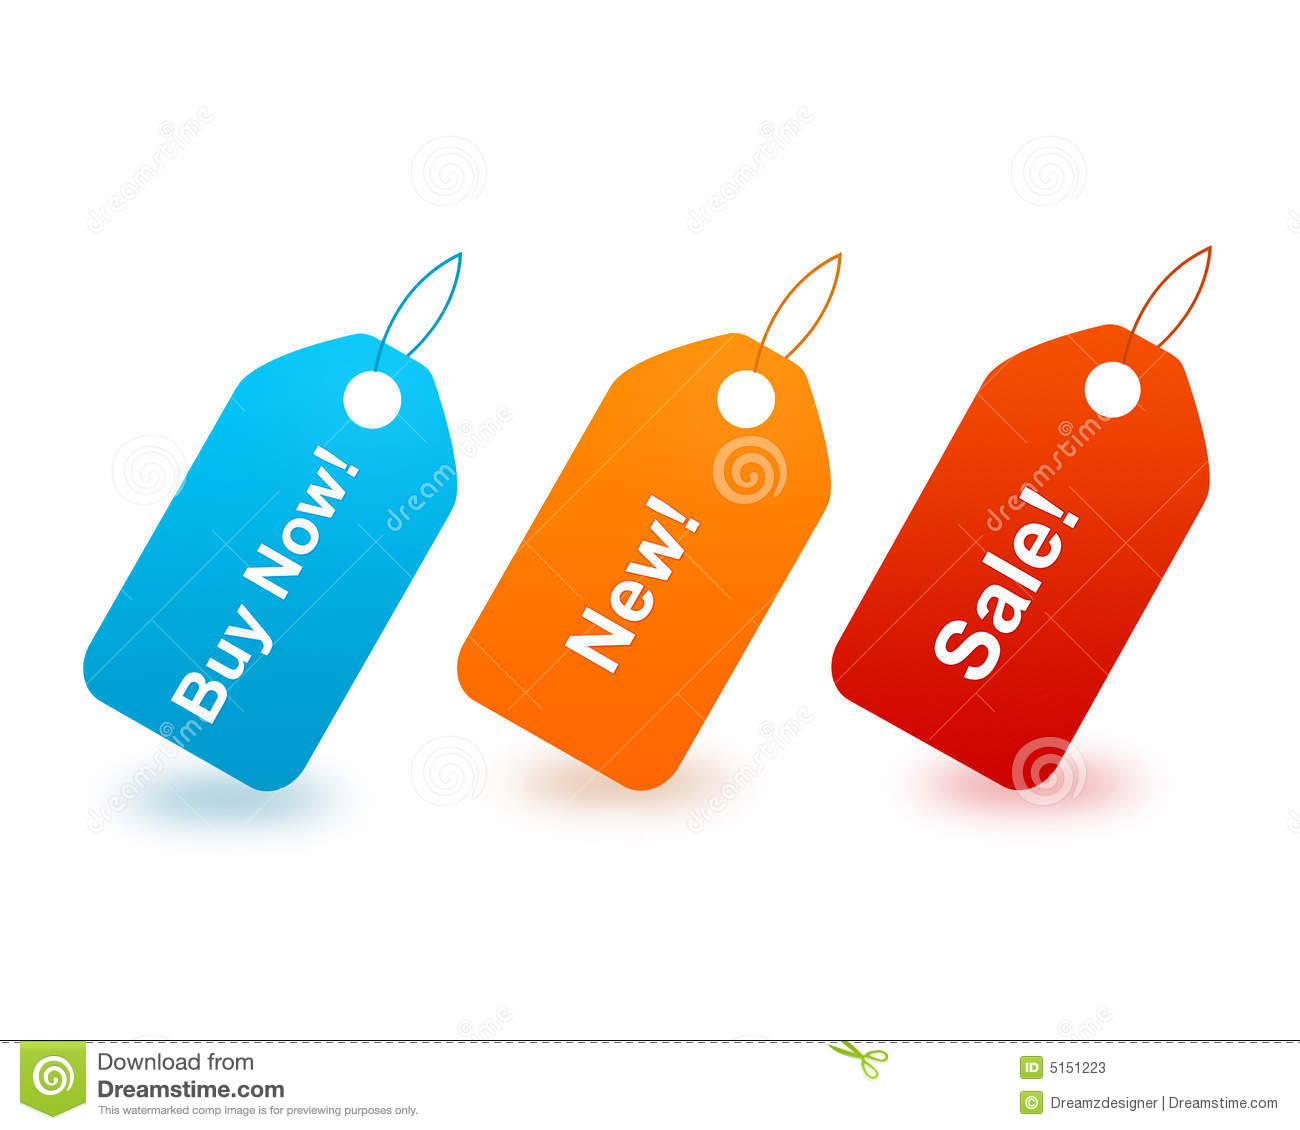 Buy: Buy Now / New And Sale Tags Stock Photos